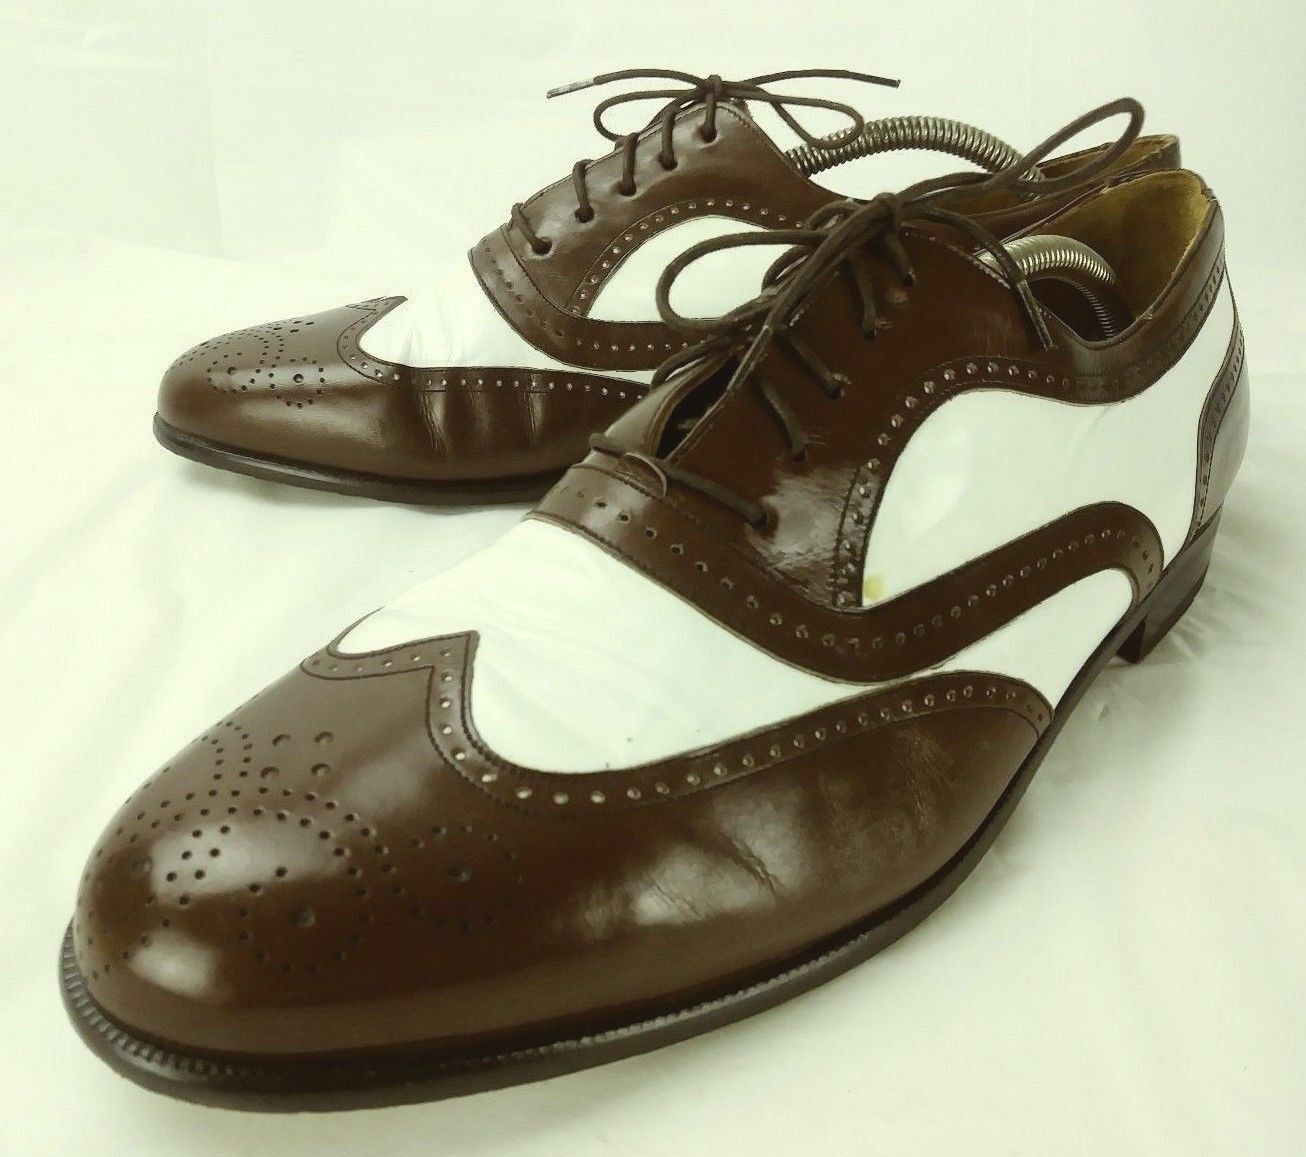 Mezlan Santiago Uomo Shoes Oxfords 10.5 M Brown bianca Leather Lace Wing Tip 650